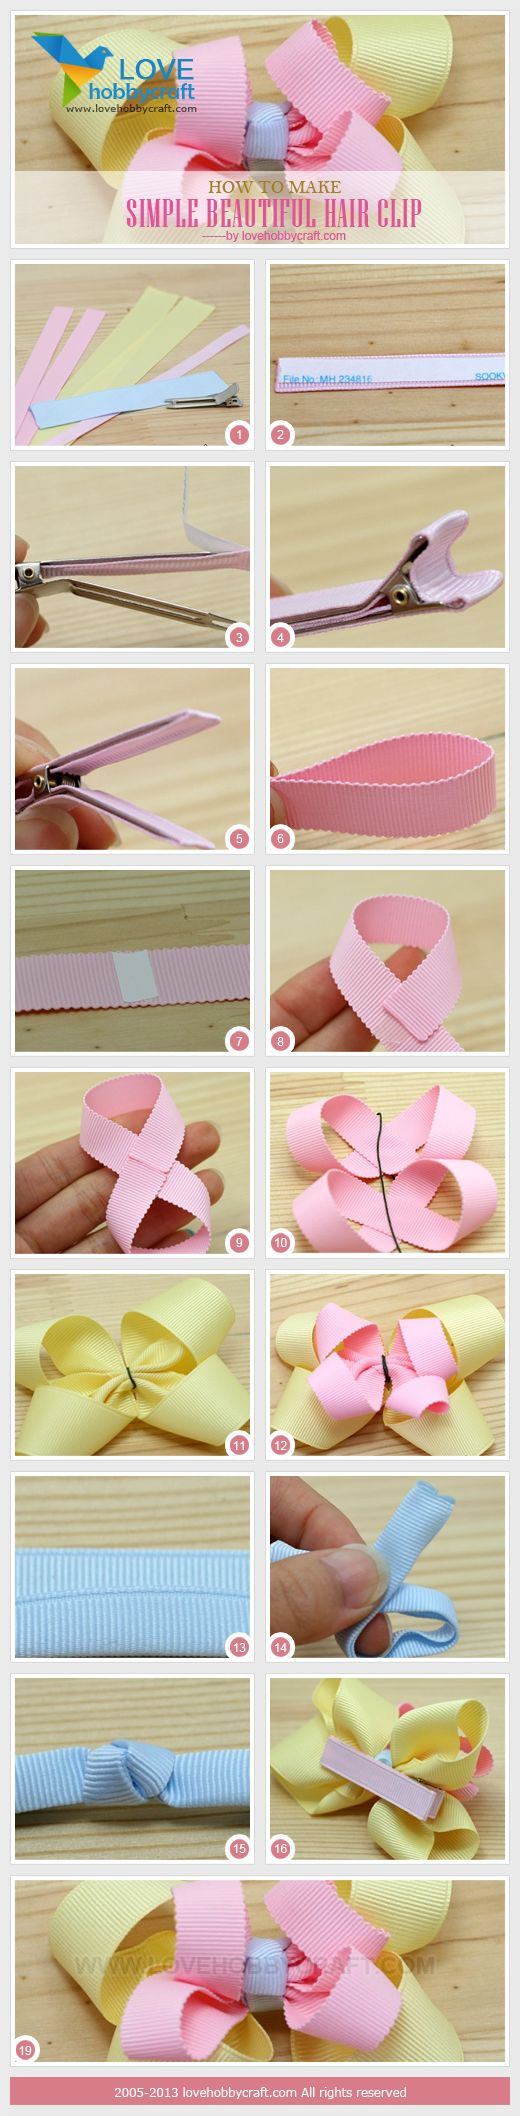 simple instructions on how to make a hair clip/bow